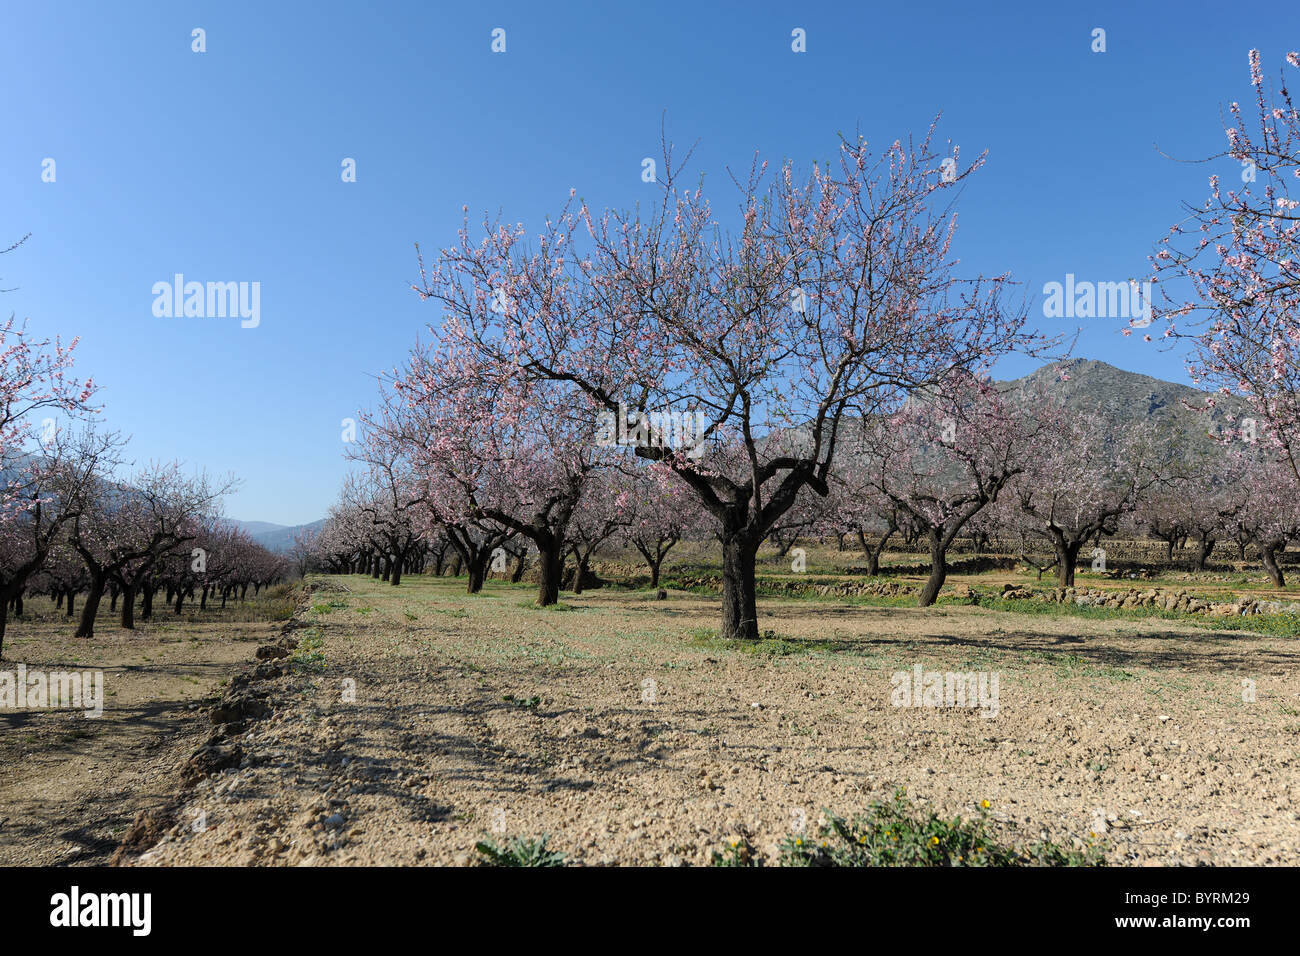 blossom on almond trees in a terraced orchard near Alcalali, (Jalon Valley), Alicante Province, Valencia, Spain - Stock Image